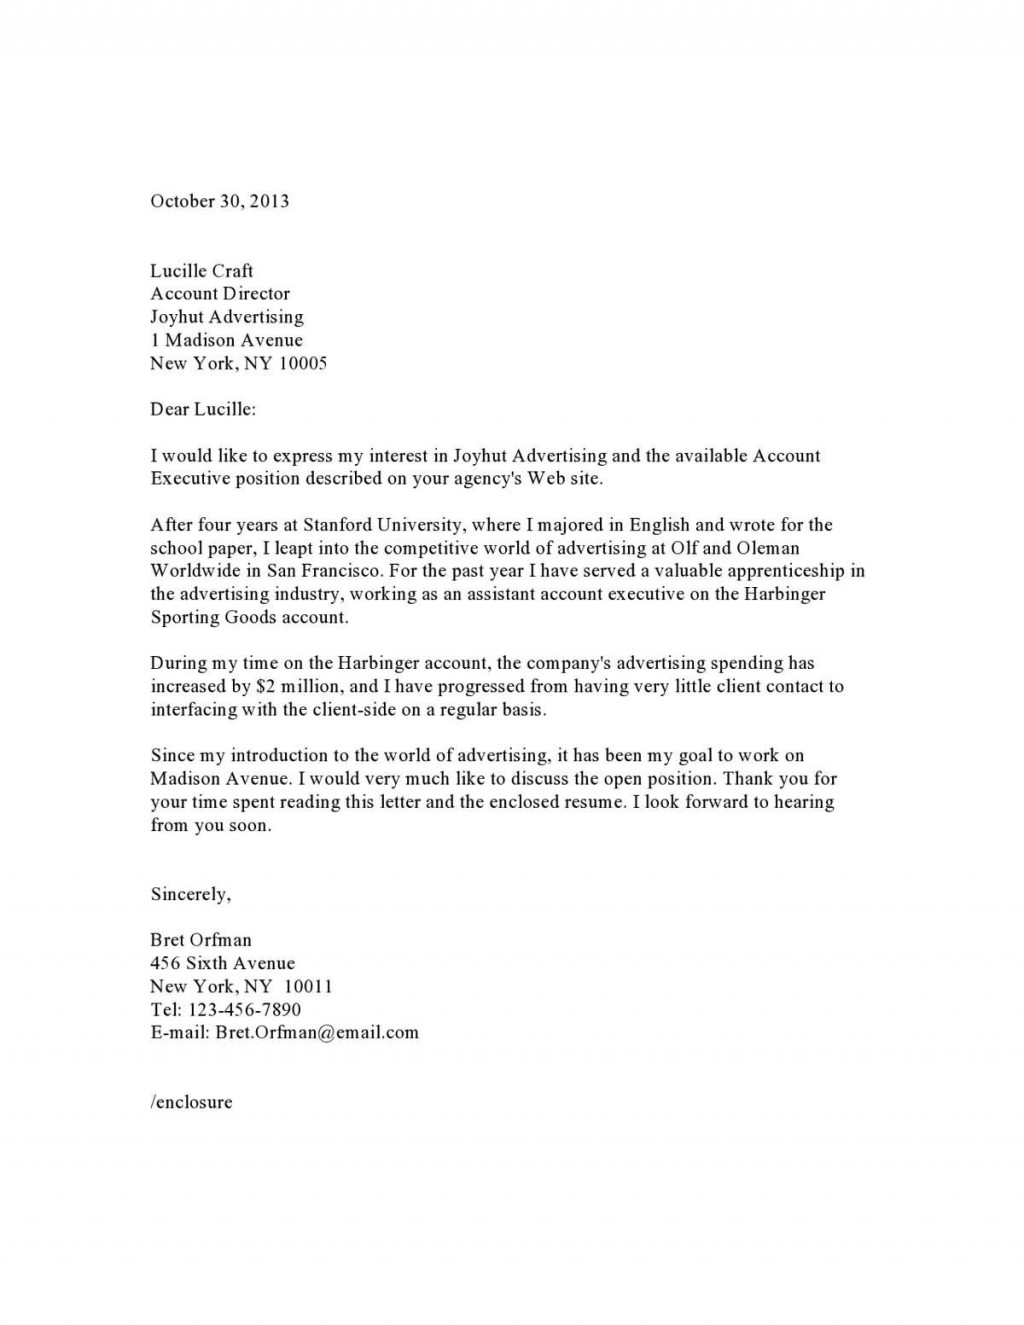 002 Marvelou Cover Letter Writing Template Picture  Format Creative Example CvLarge